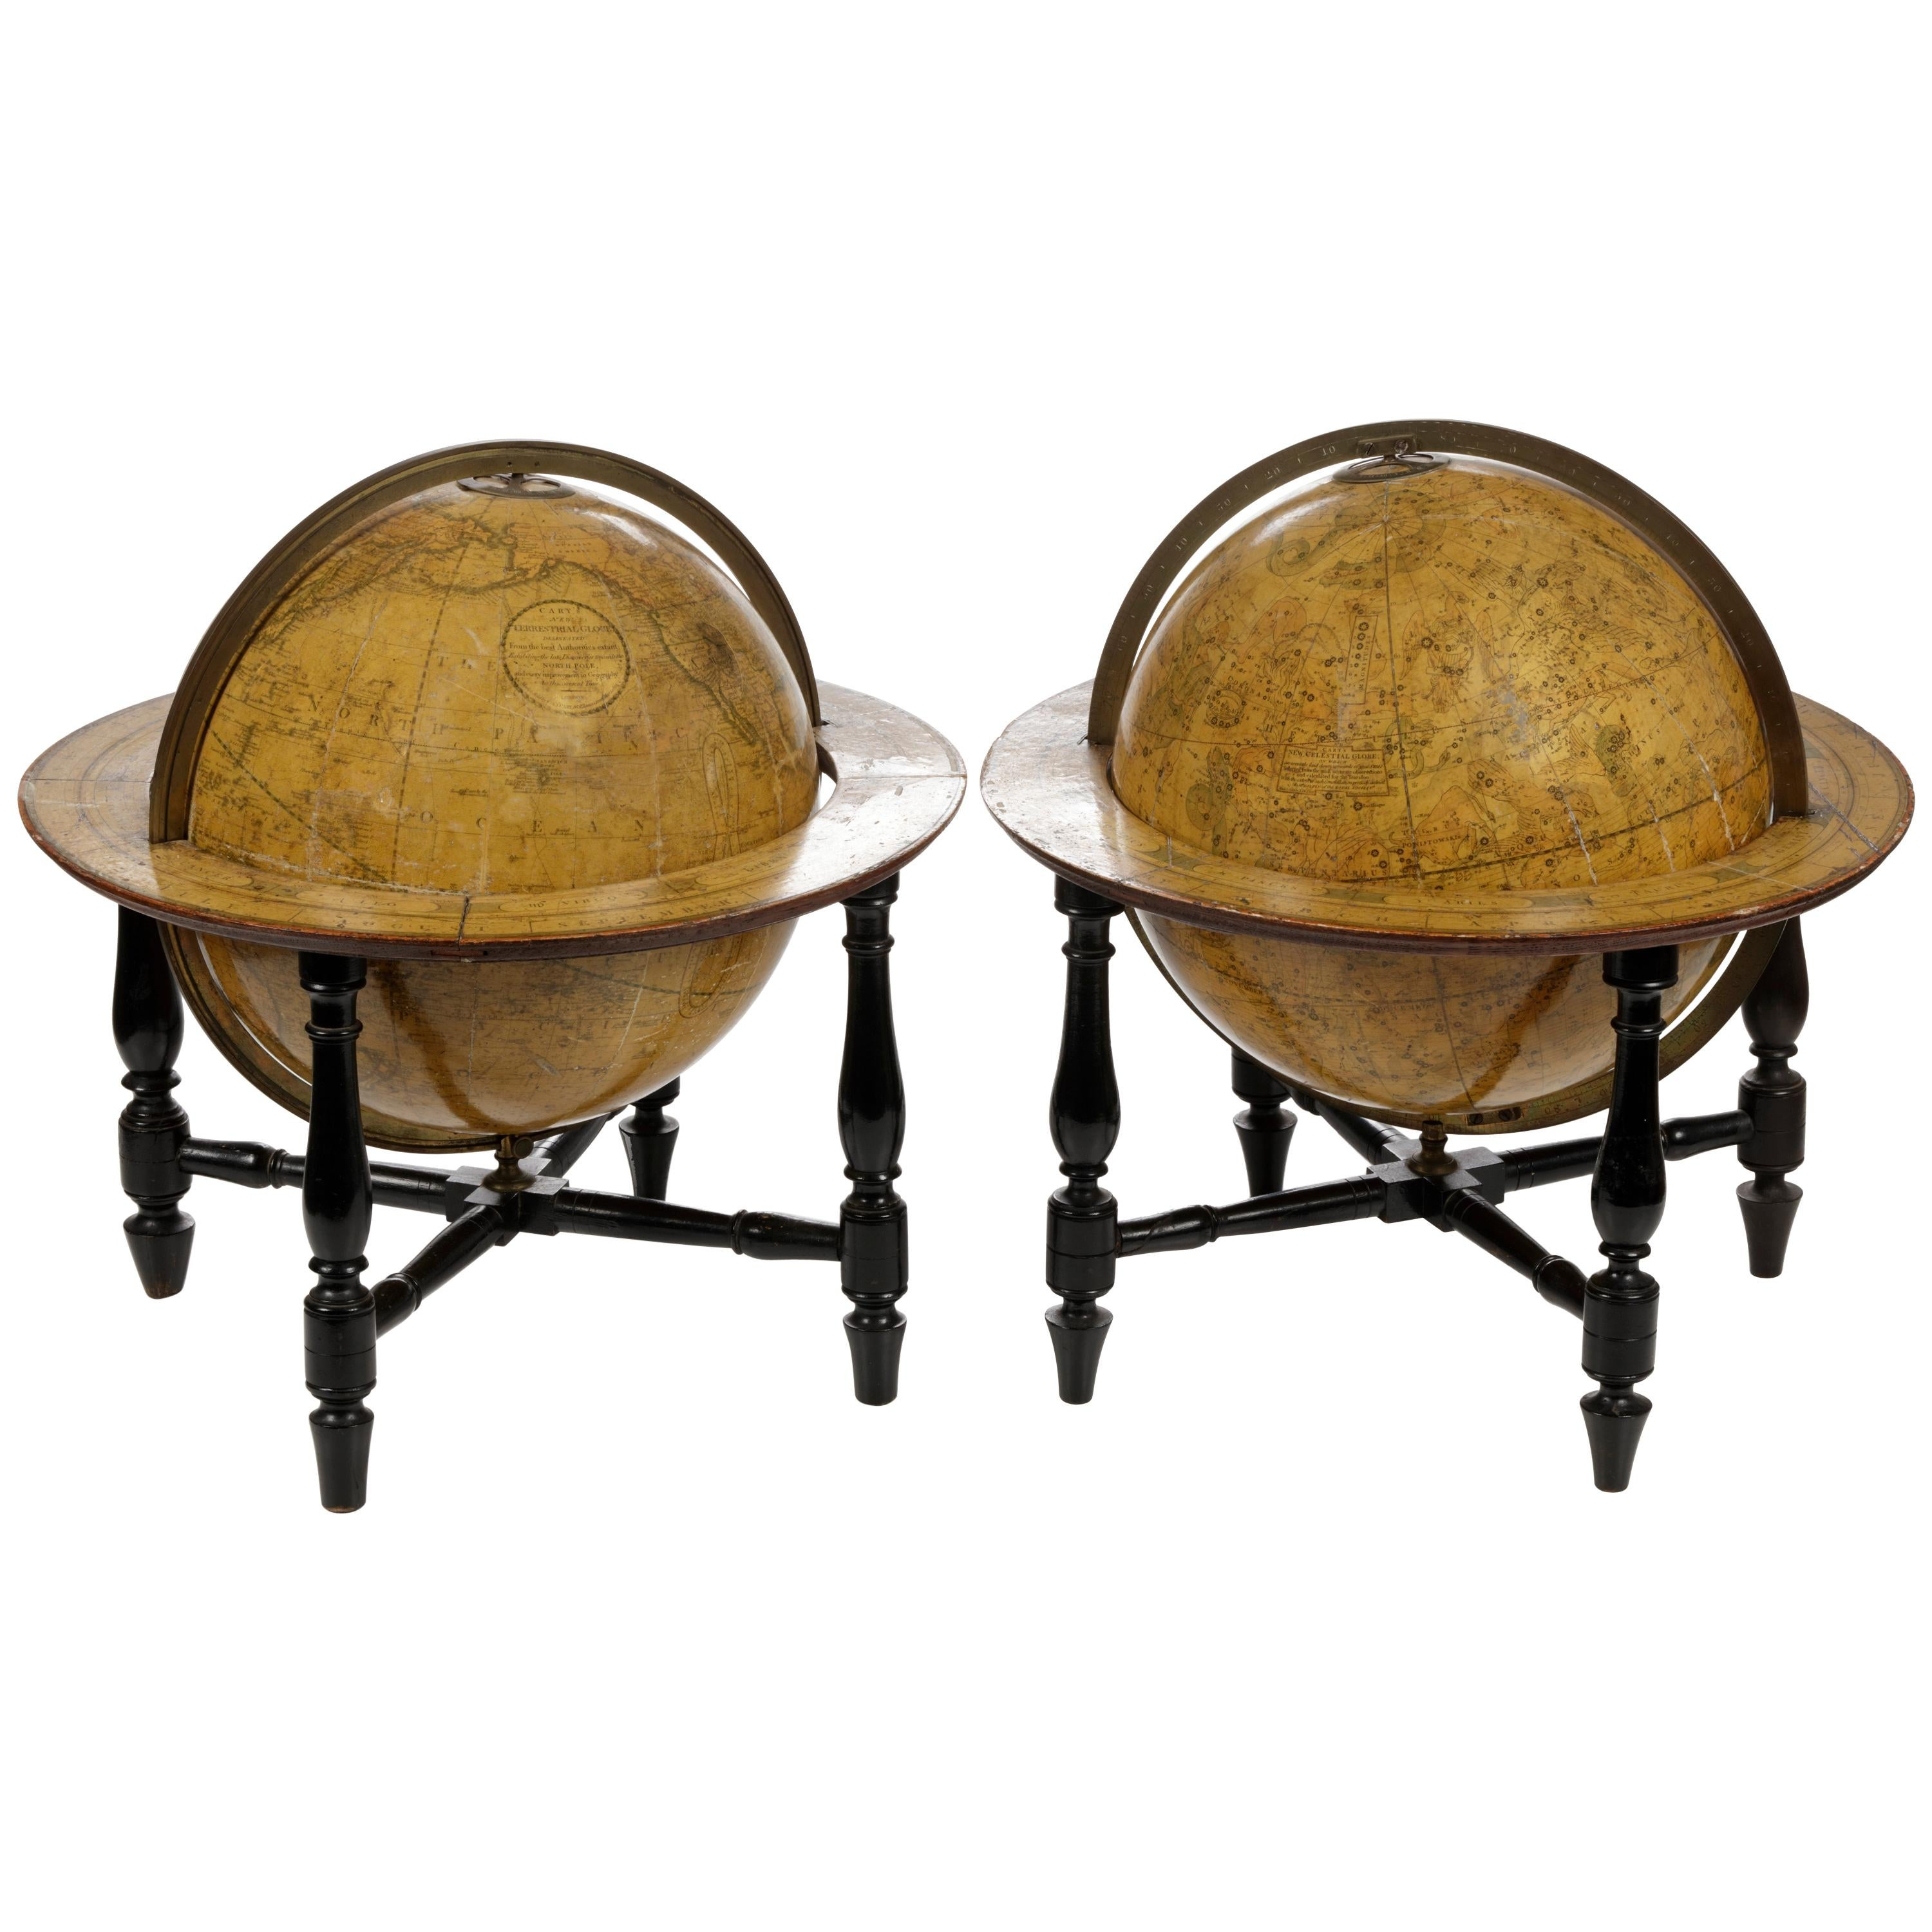 Pair of Fine Desk Globes by J. Cary, 1816 and 1824